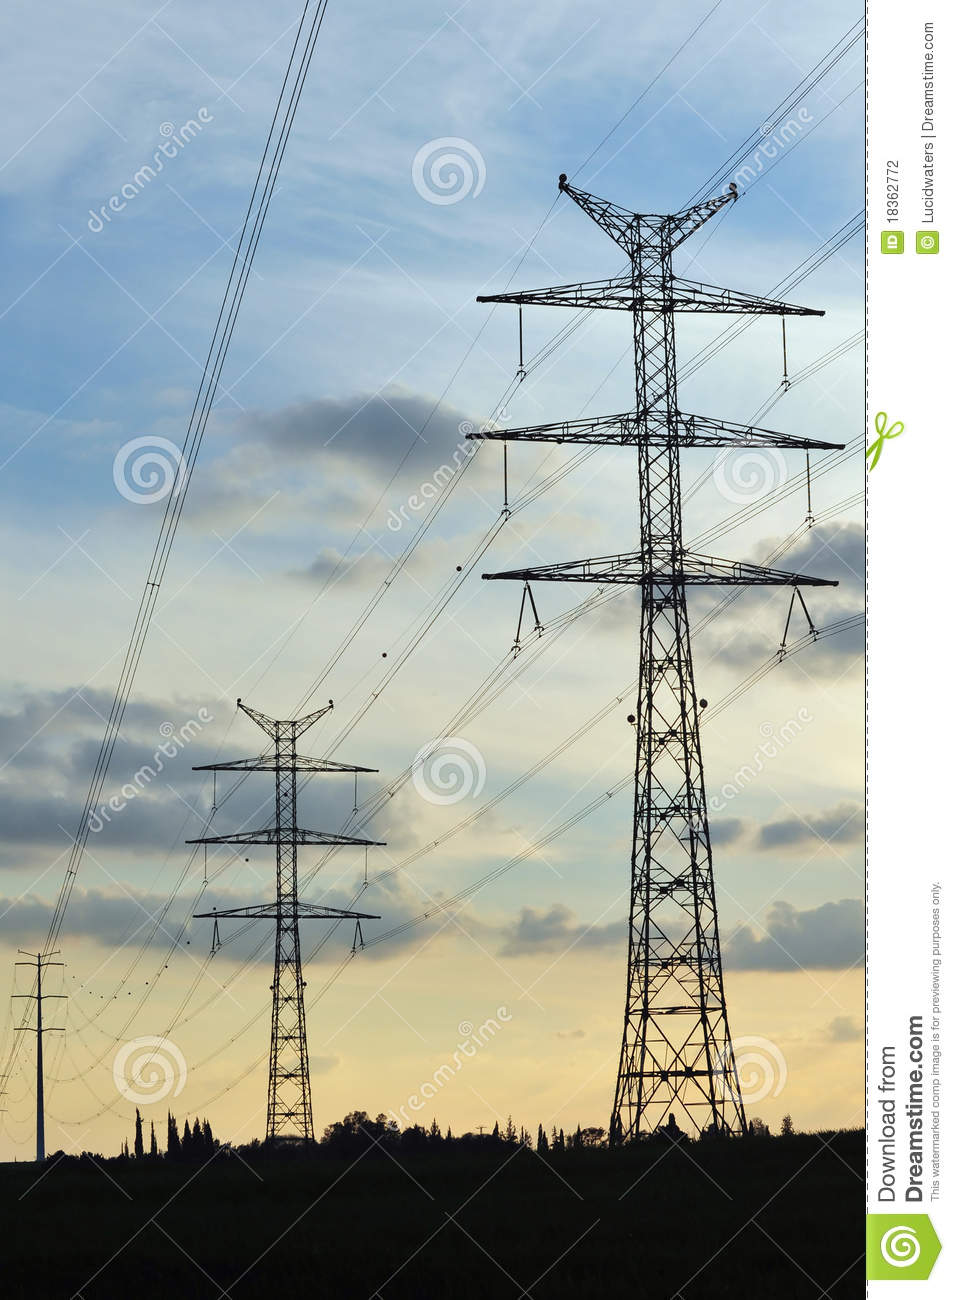 Electric Power Lines : Electric power lines stock photography cartoondealer